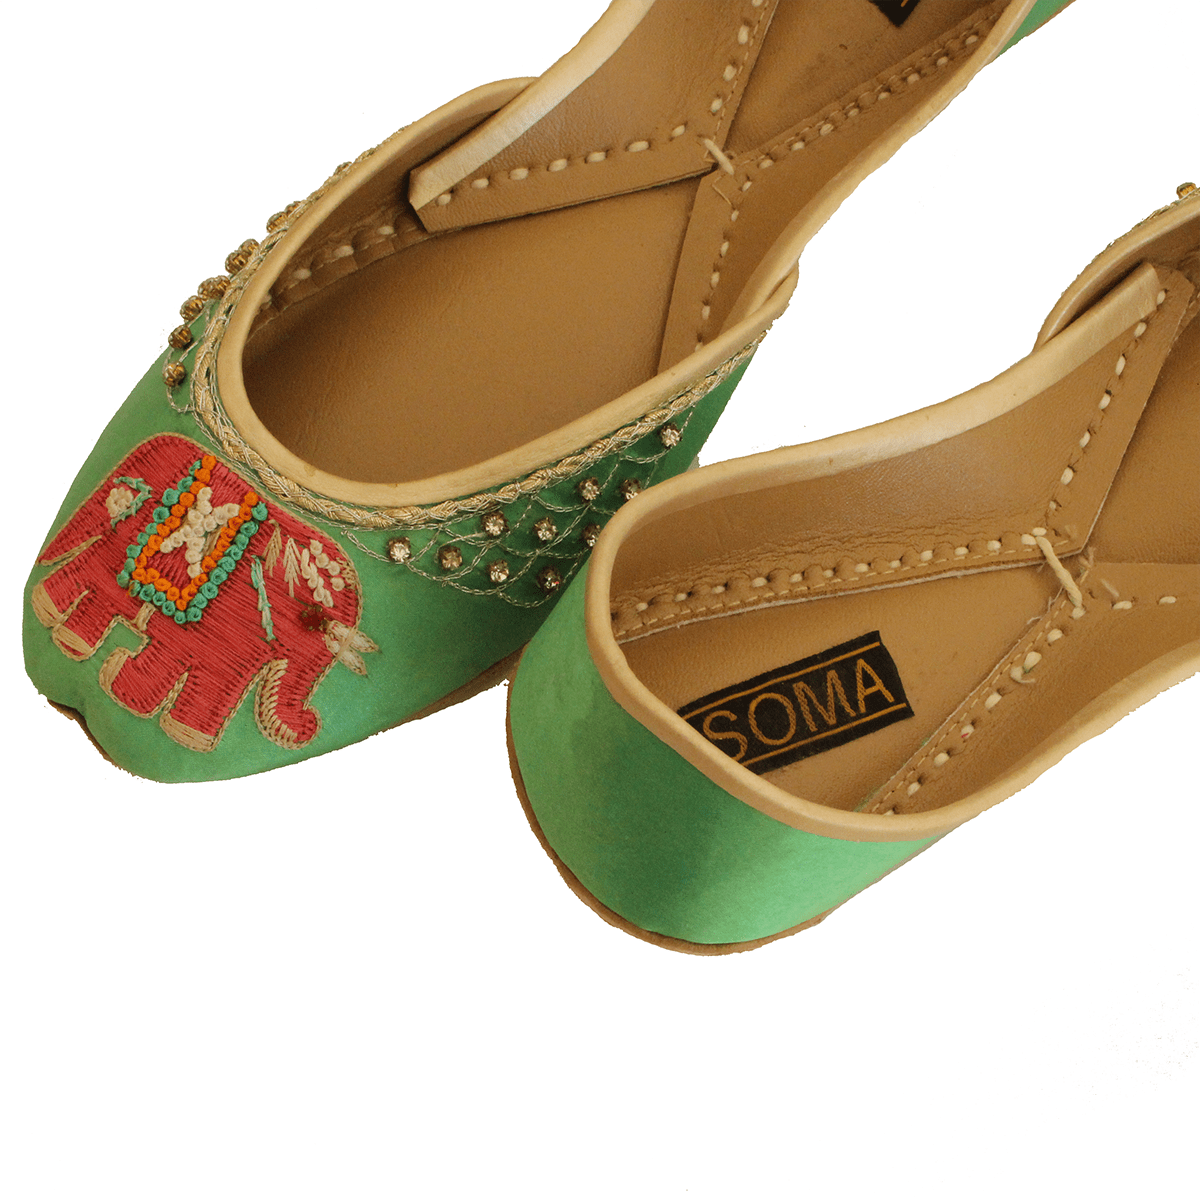 Soma green elli hand crafted footwear for Handcrafted or hand crafted